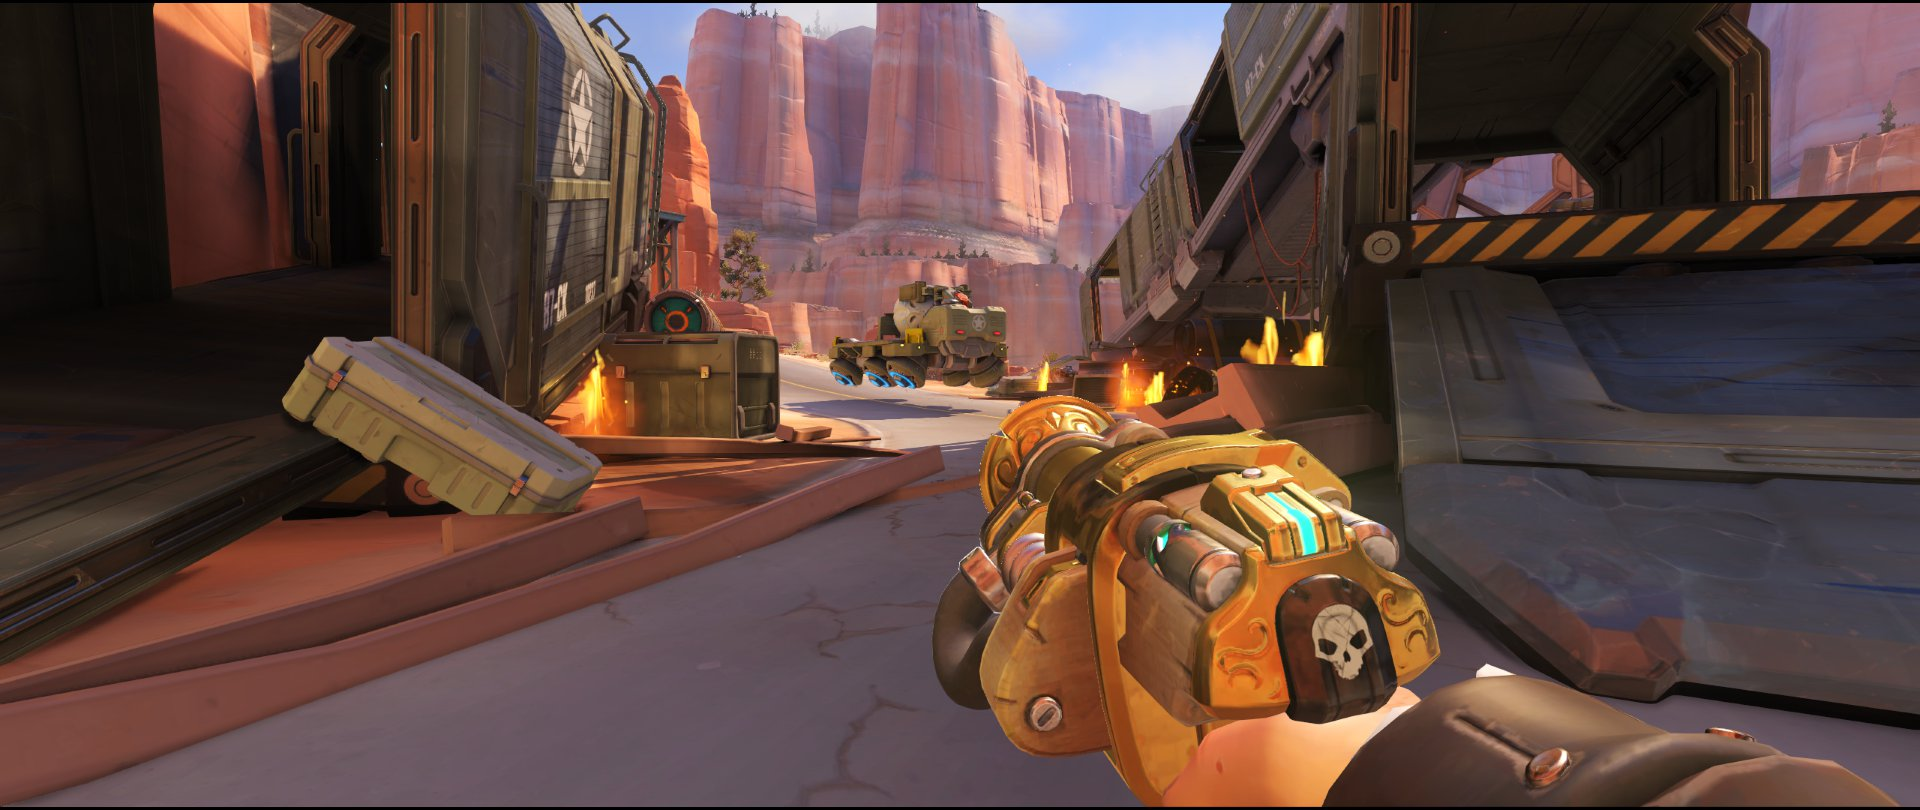 Side+ramp+start+view+turret+placement+Torbjorn+Route+66+Overwatch